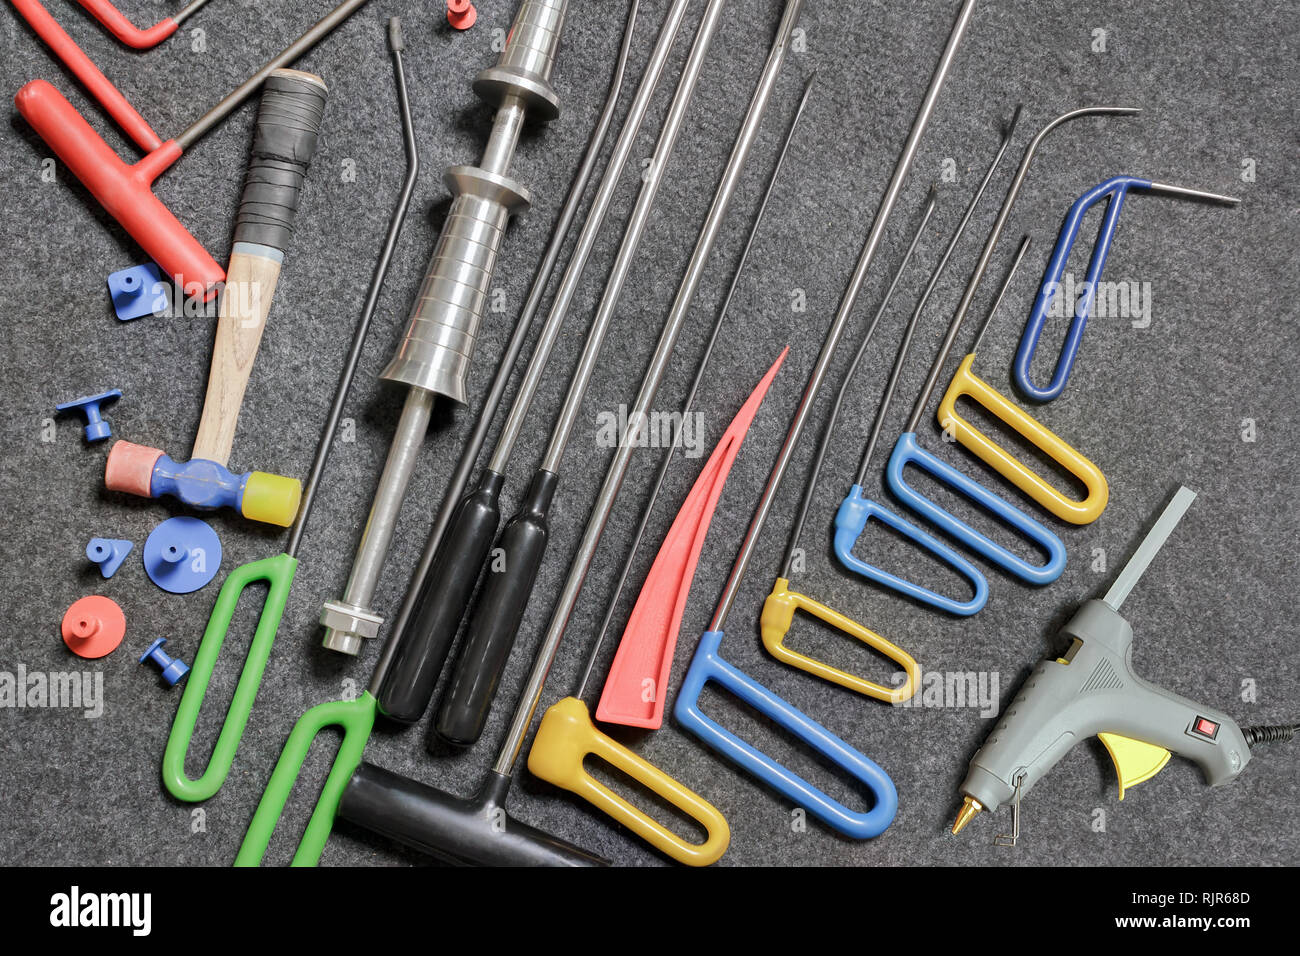 Tools for removing dents on the car body without painting Stock Photo